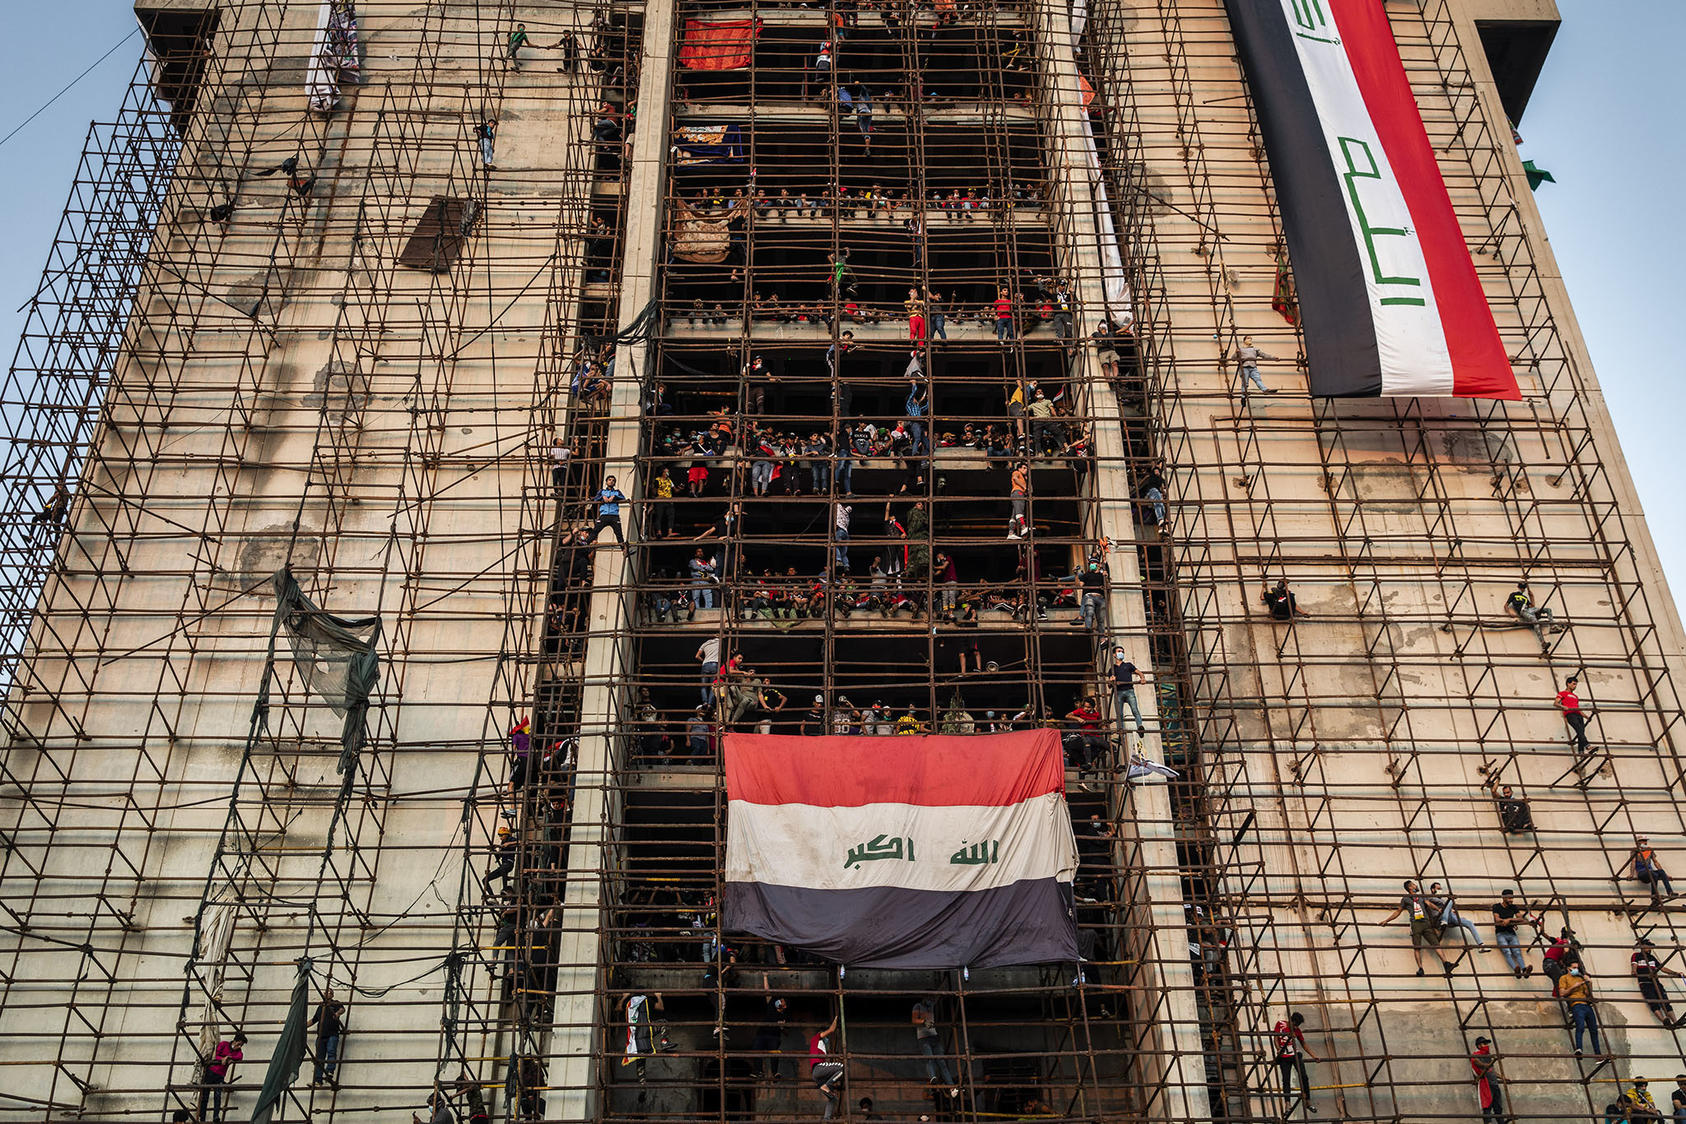 Young men climb scaffolding to reach the upper levels of an unfinished building overlooking mass protests in Tahrir Square in Baghdad, Nov. 1, 2019. (Ivor Prickett/The New York Times)